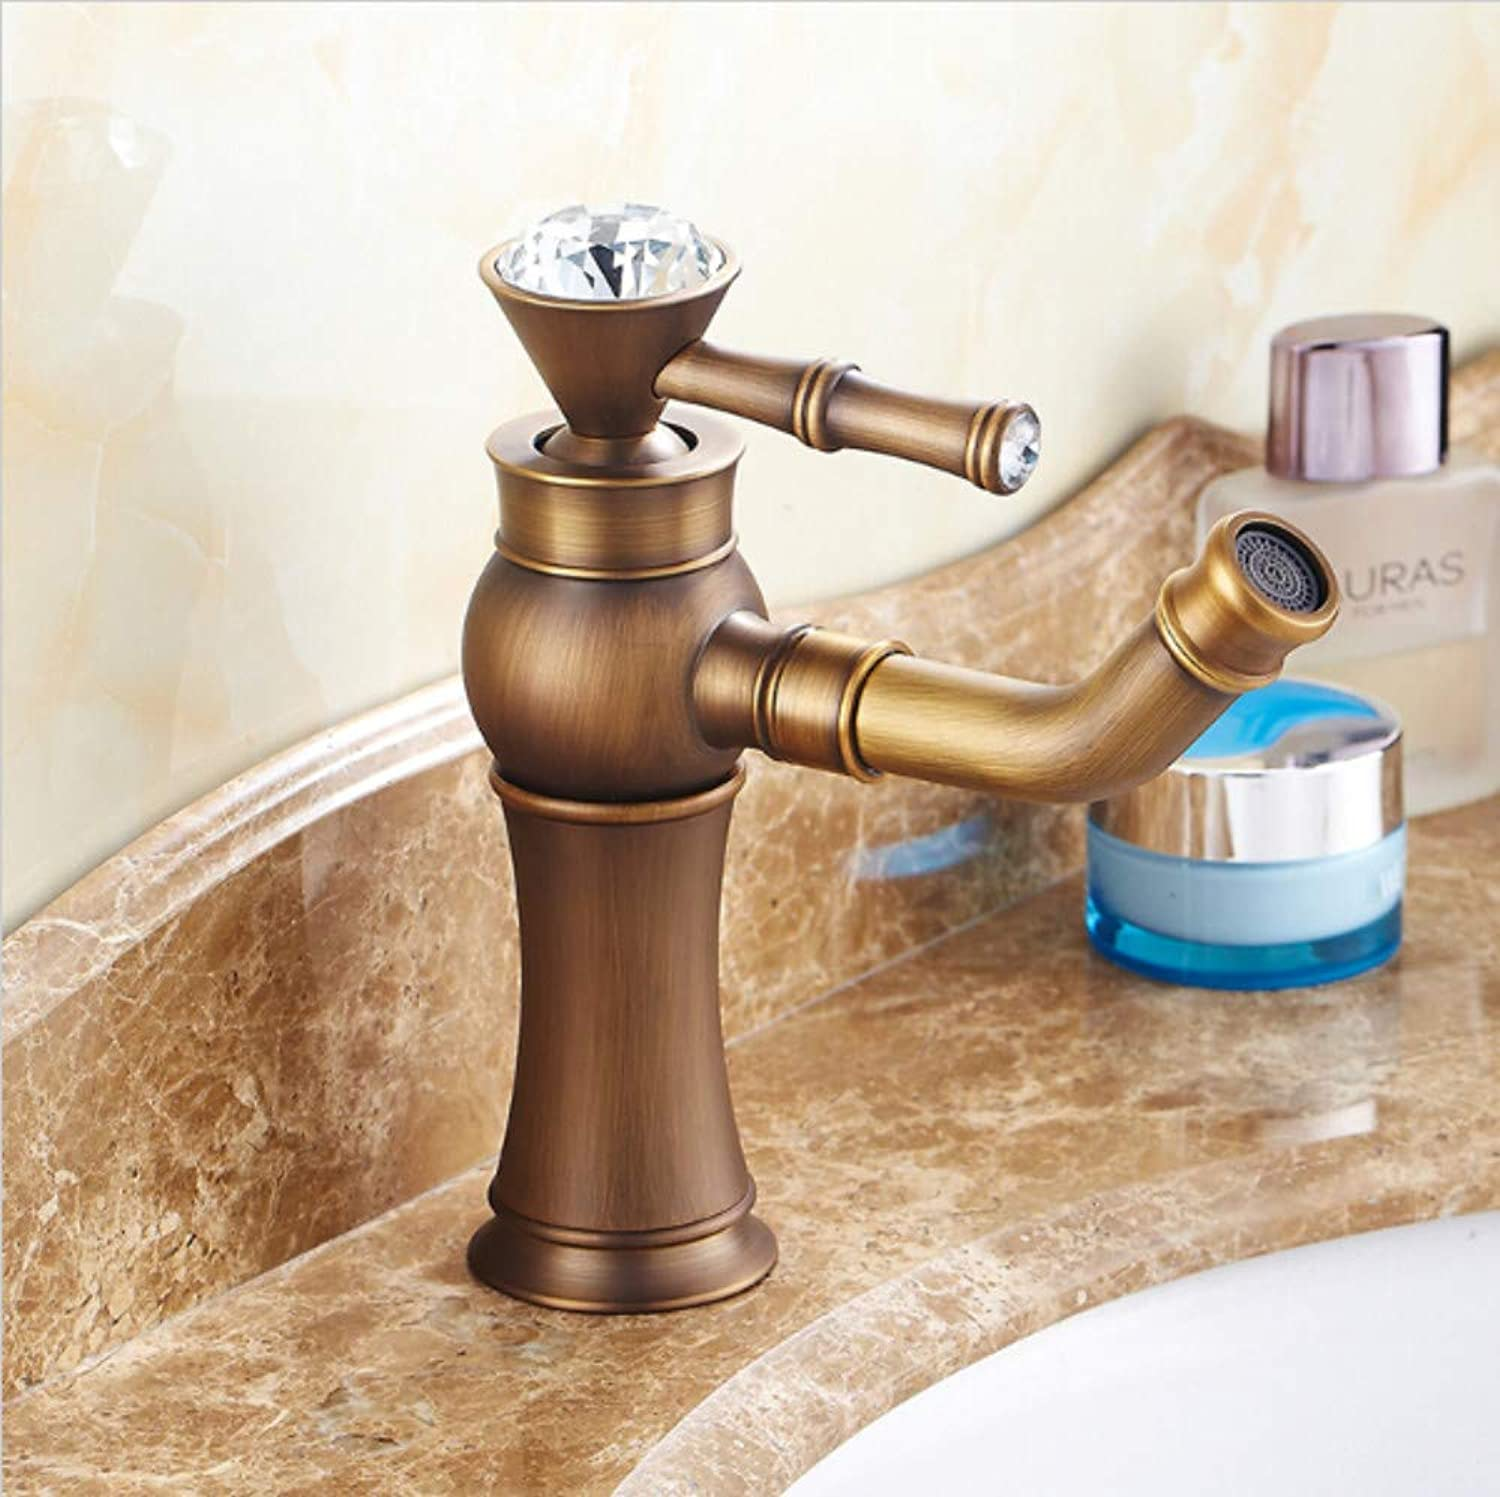 Bathroom Sink Tap Antique Brass and Crystal Handle redable Spout Bathroom Basin Brass Faucet Mixer Tap